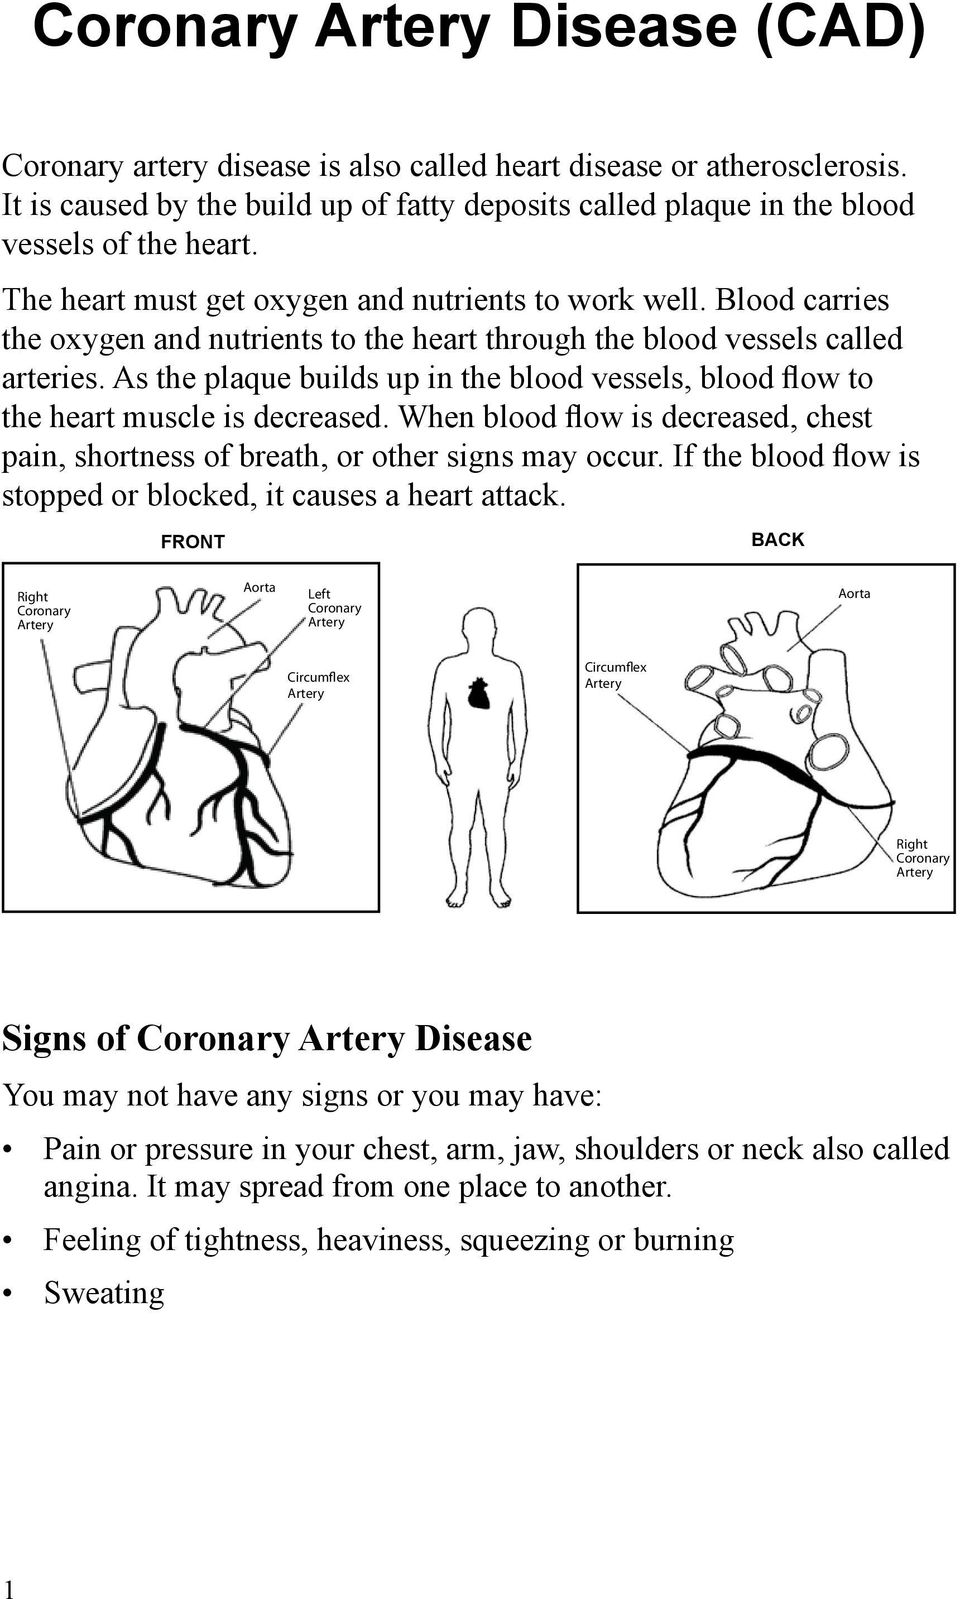 As the plaque builds up in the blood vessels, blood flow to the heart muscle is decreased. When blood flow is decreased, chest pain, shortness of breath, or other signs may occur.